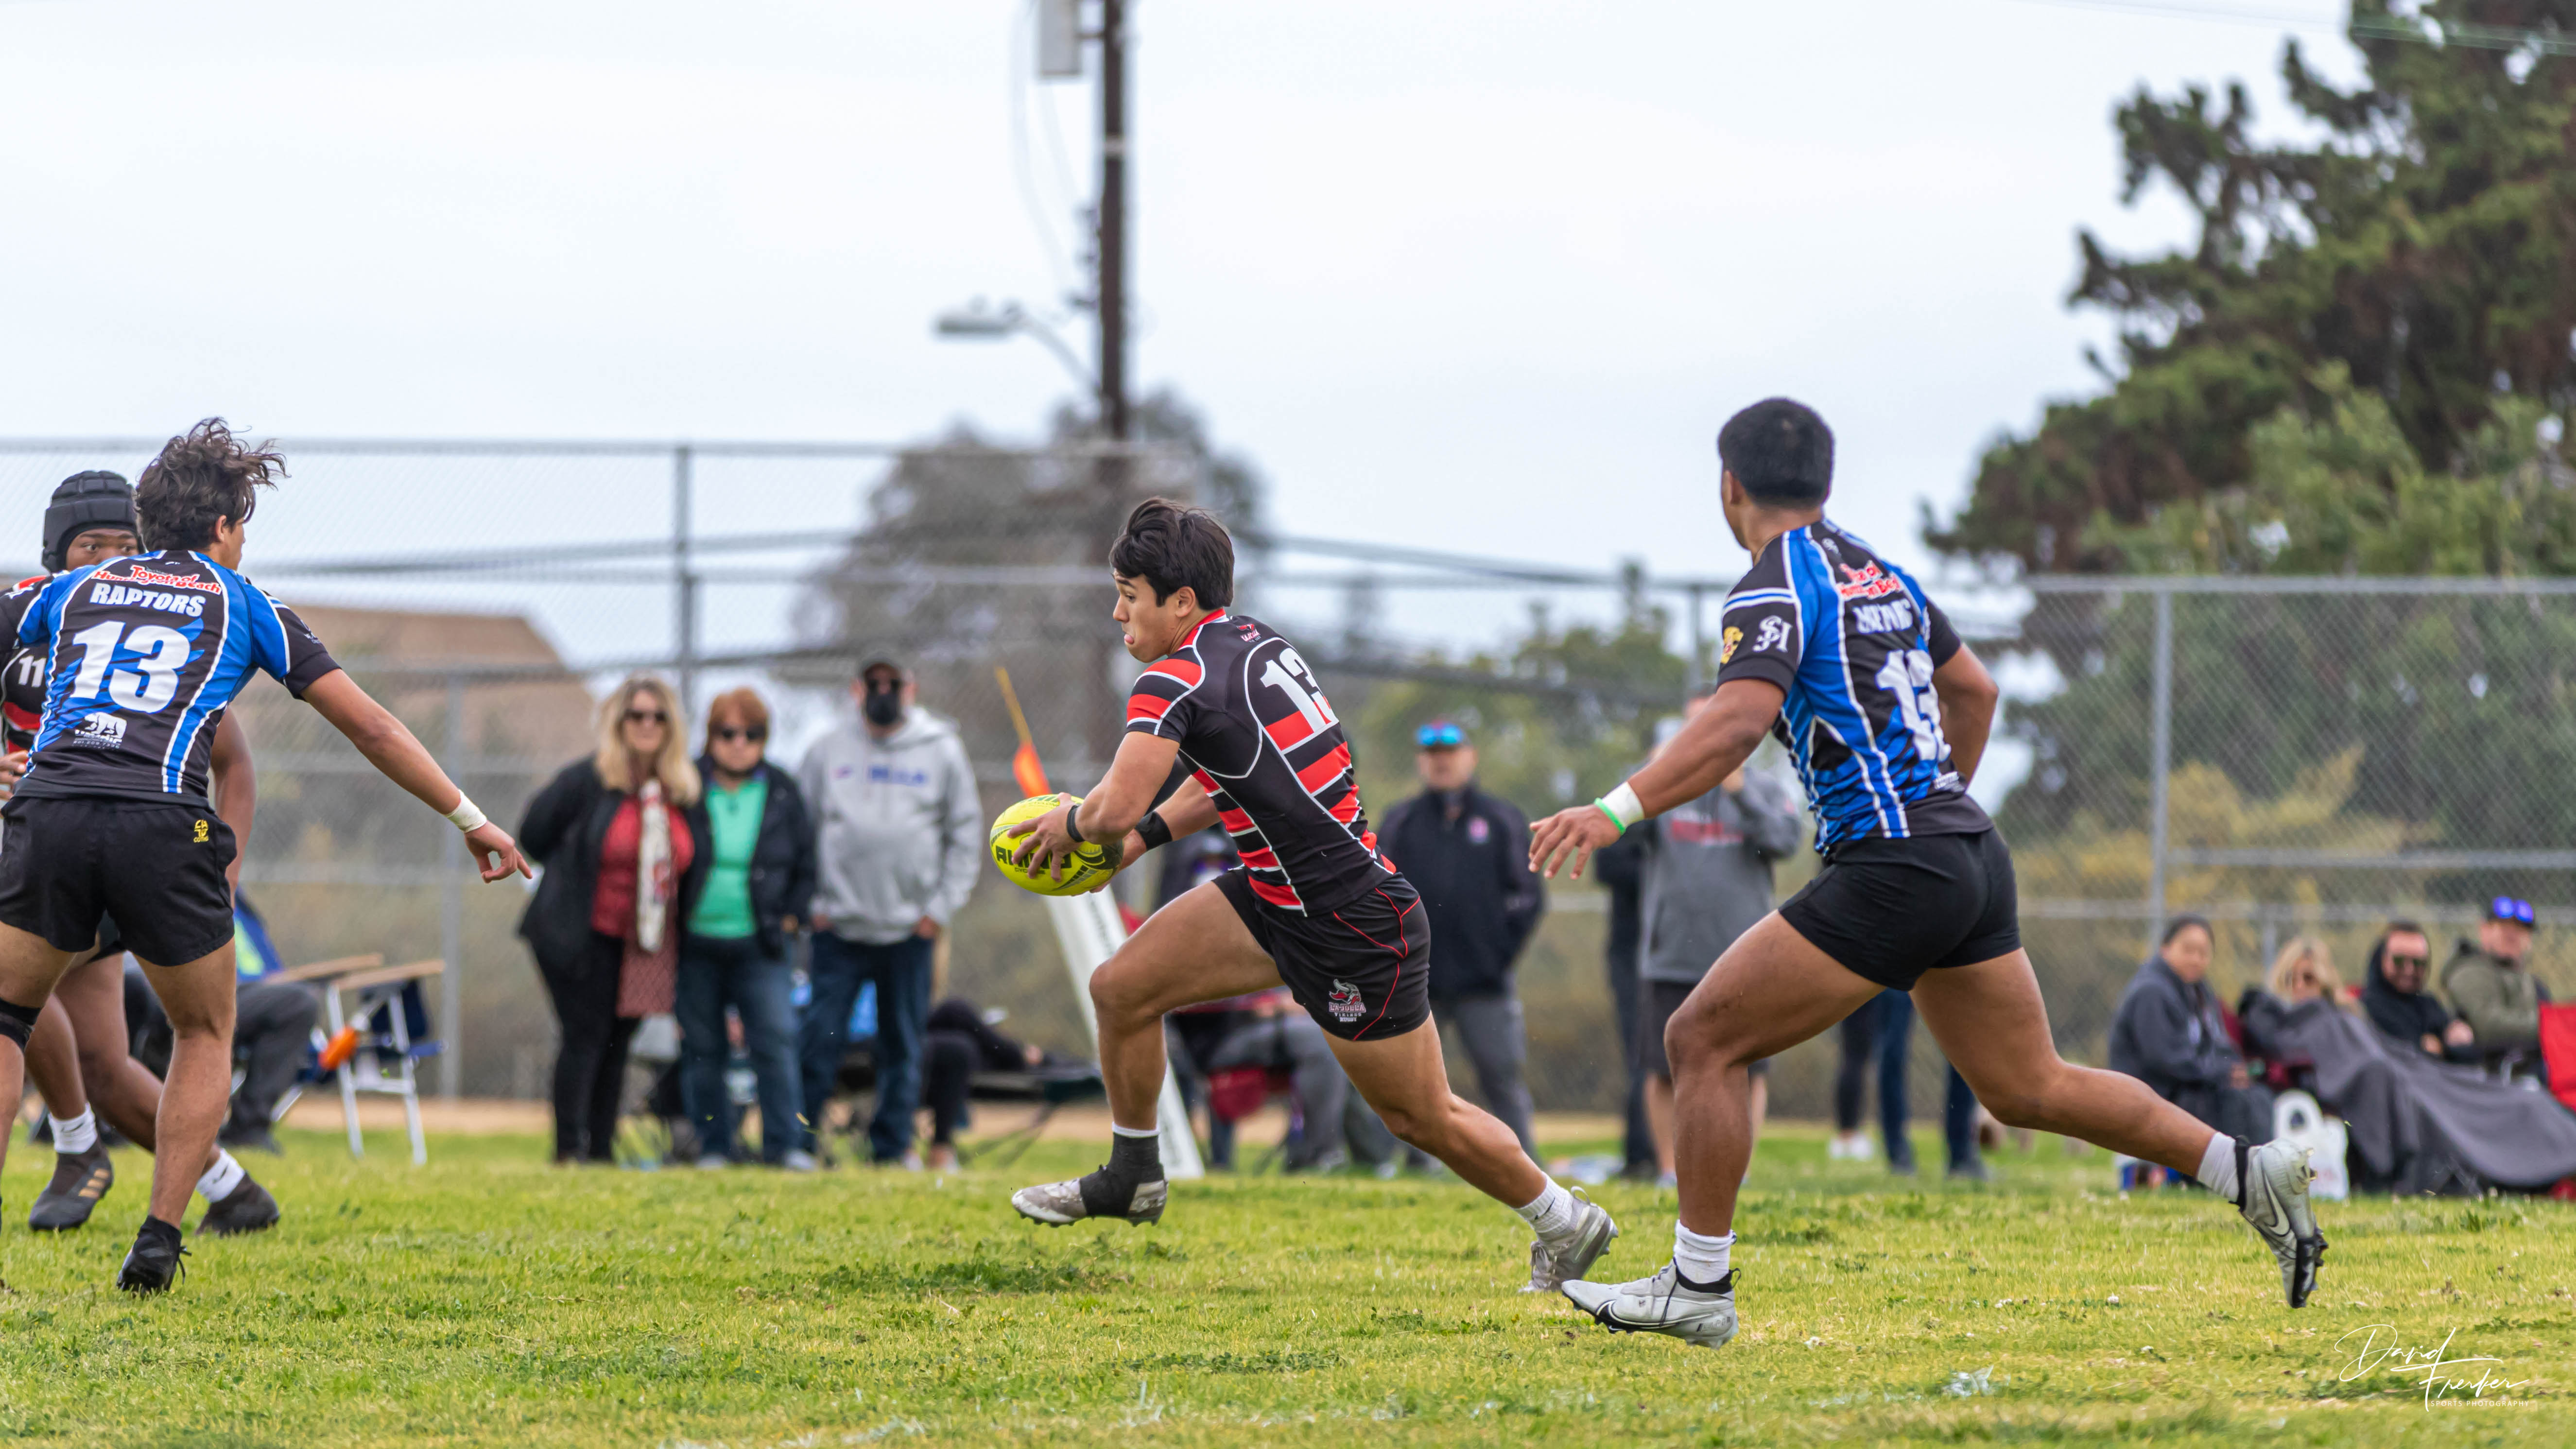 LaJollaRugby36